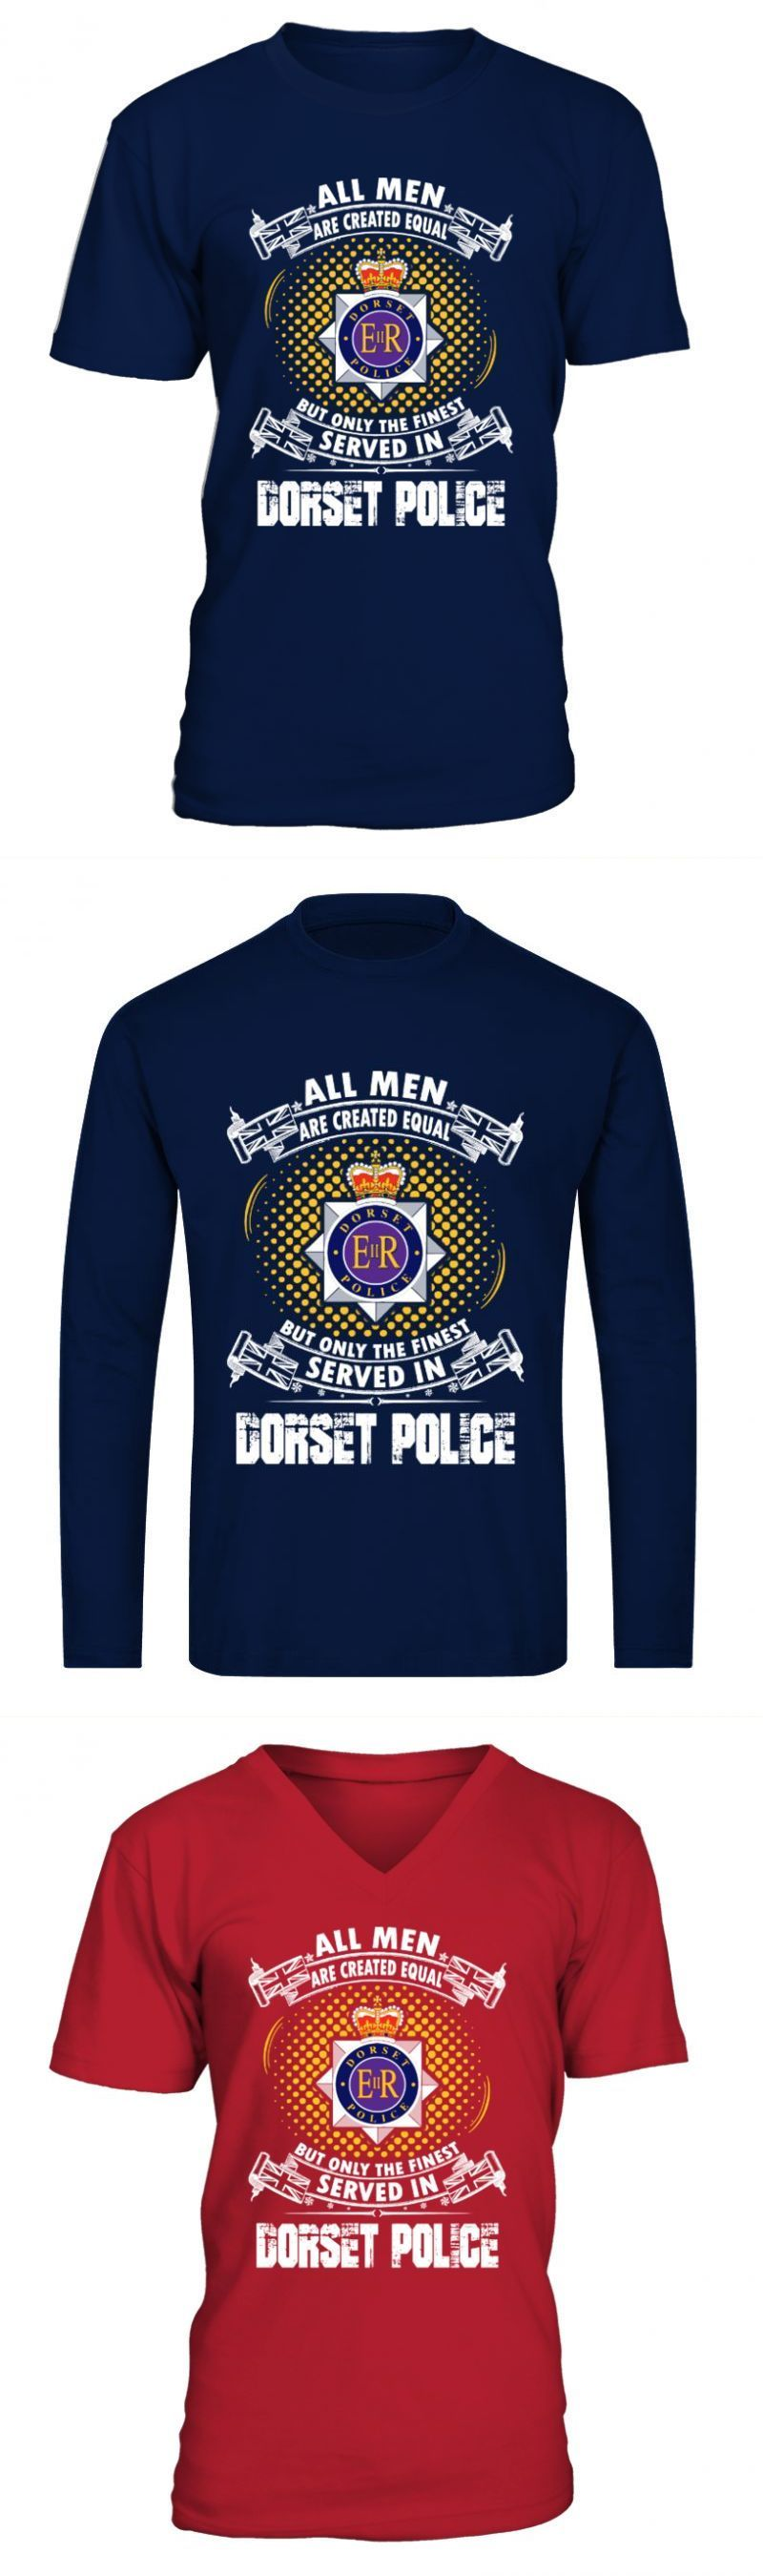 Legal tshirt designs all men served in dorset police